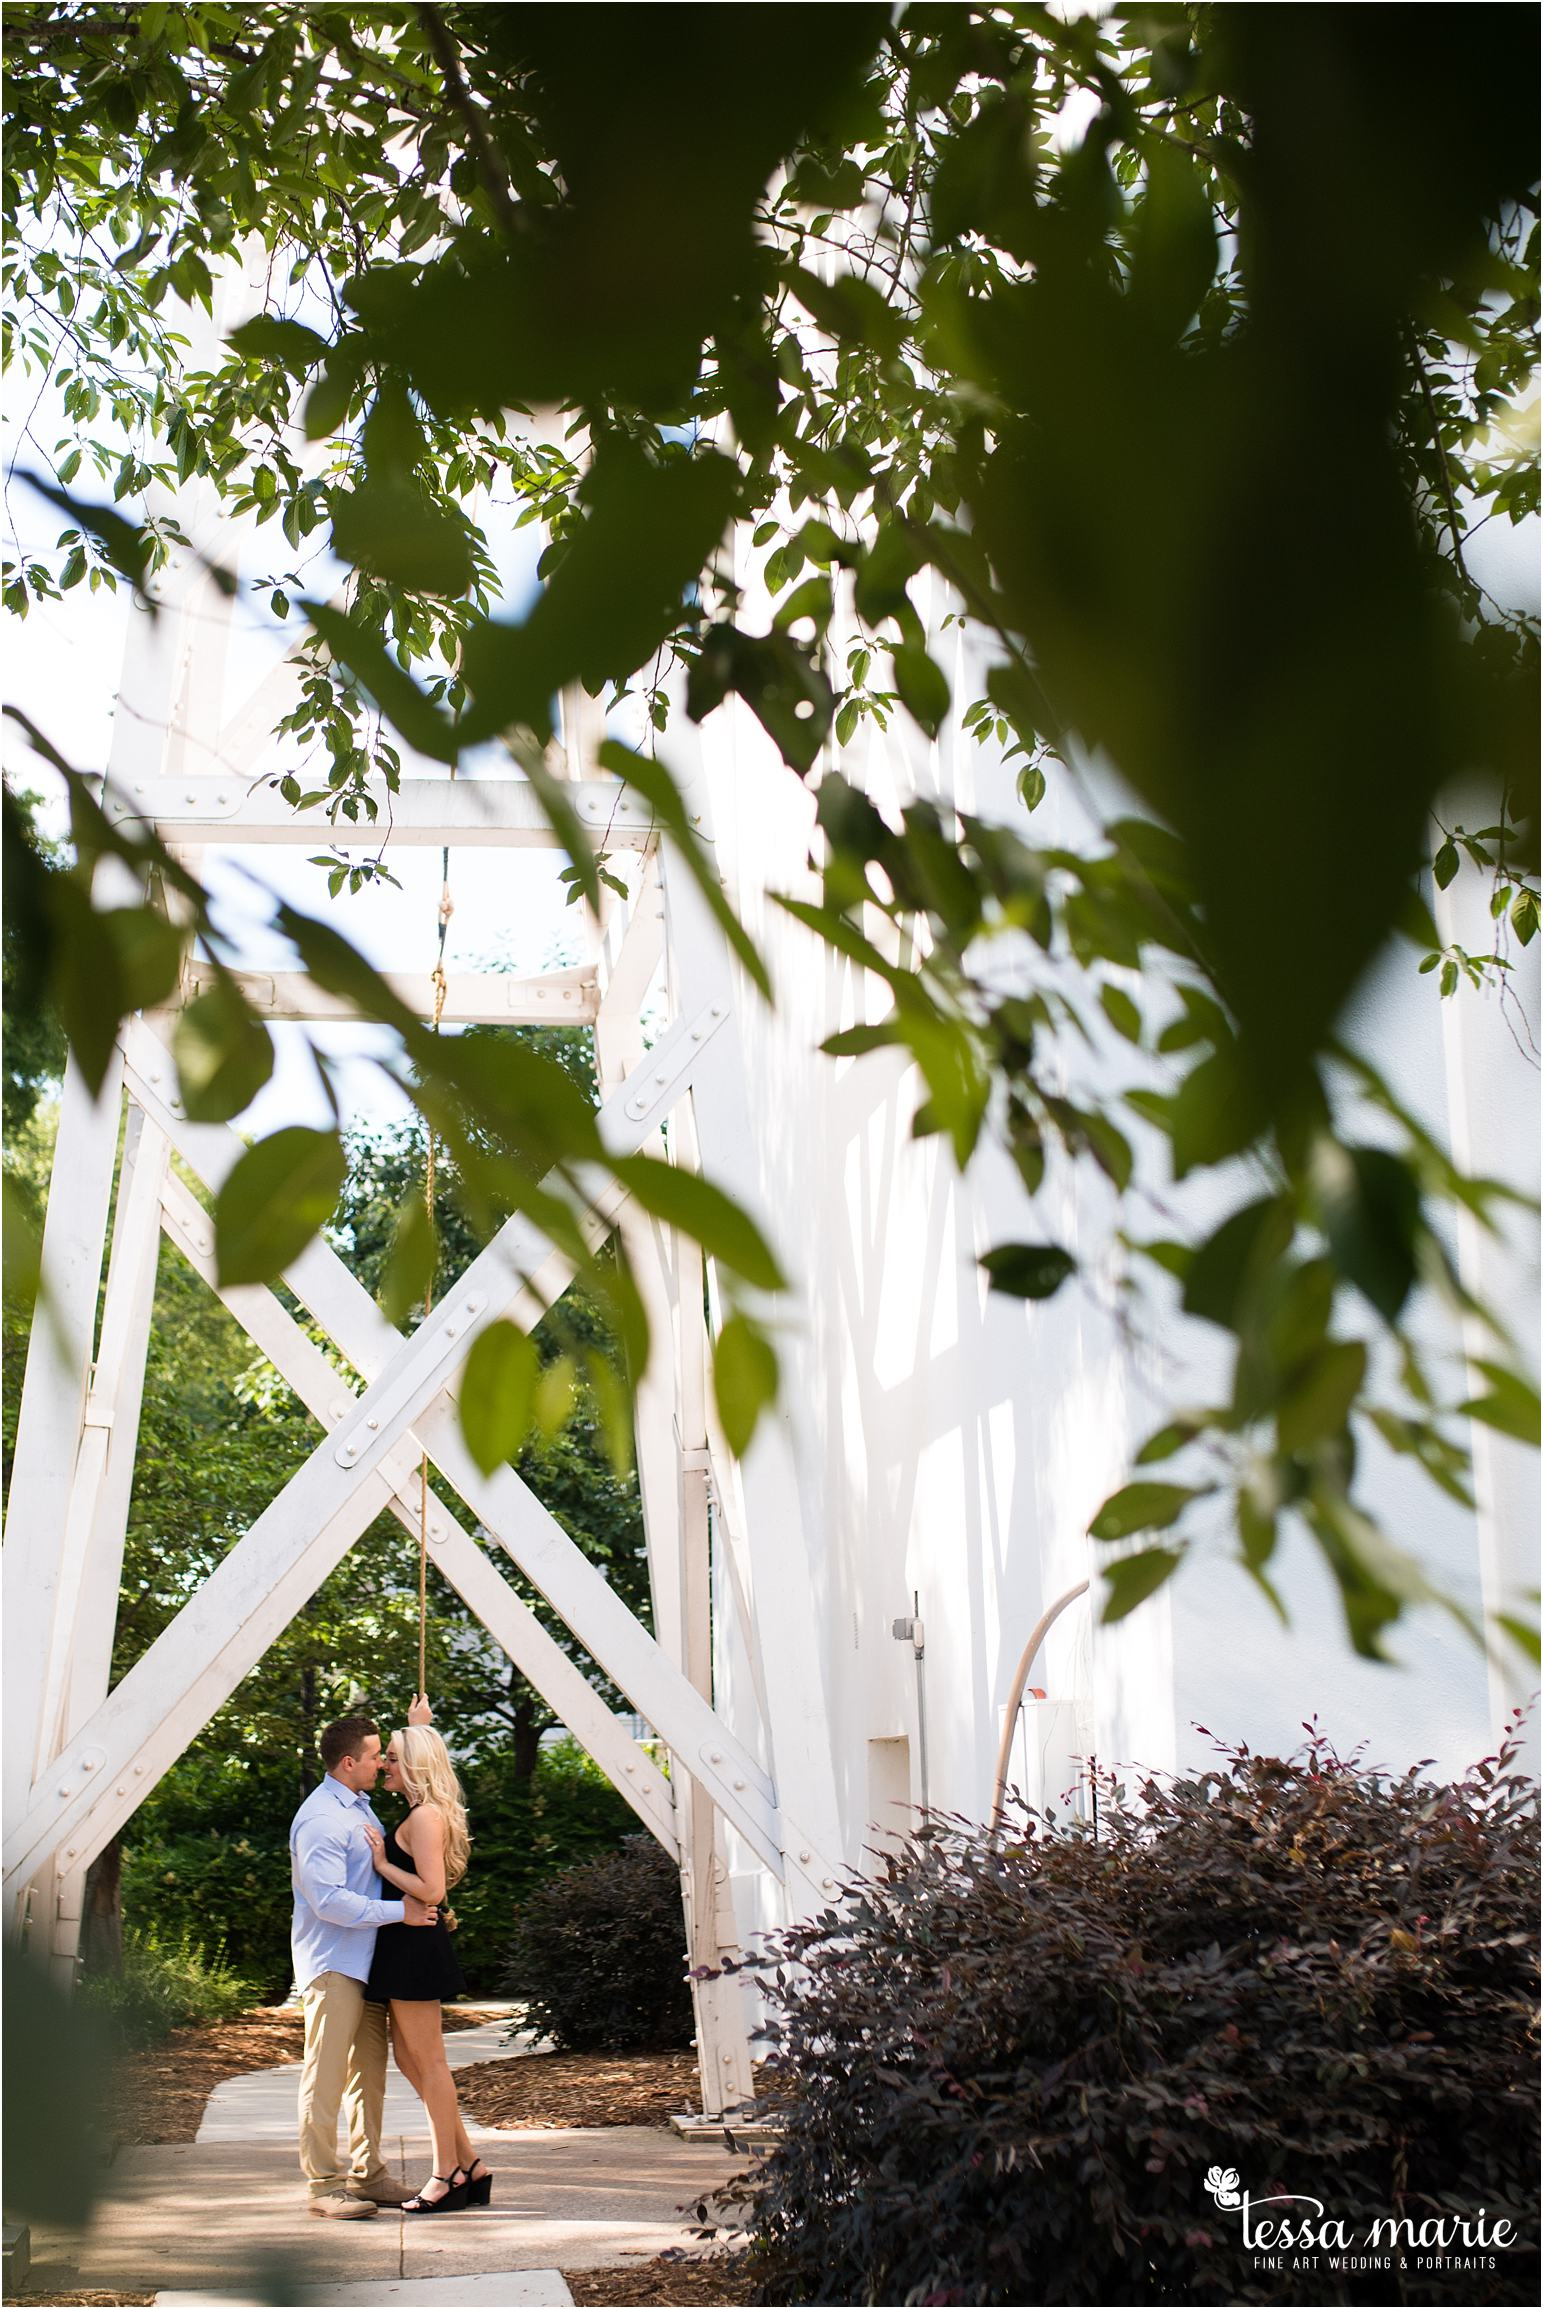 athens_ga_uga_university_of_georgia_engagement_pictures_north_campus_tessa_marie_weddings_athens_wedding_photographer_0027